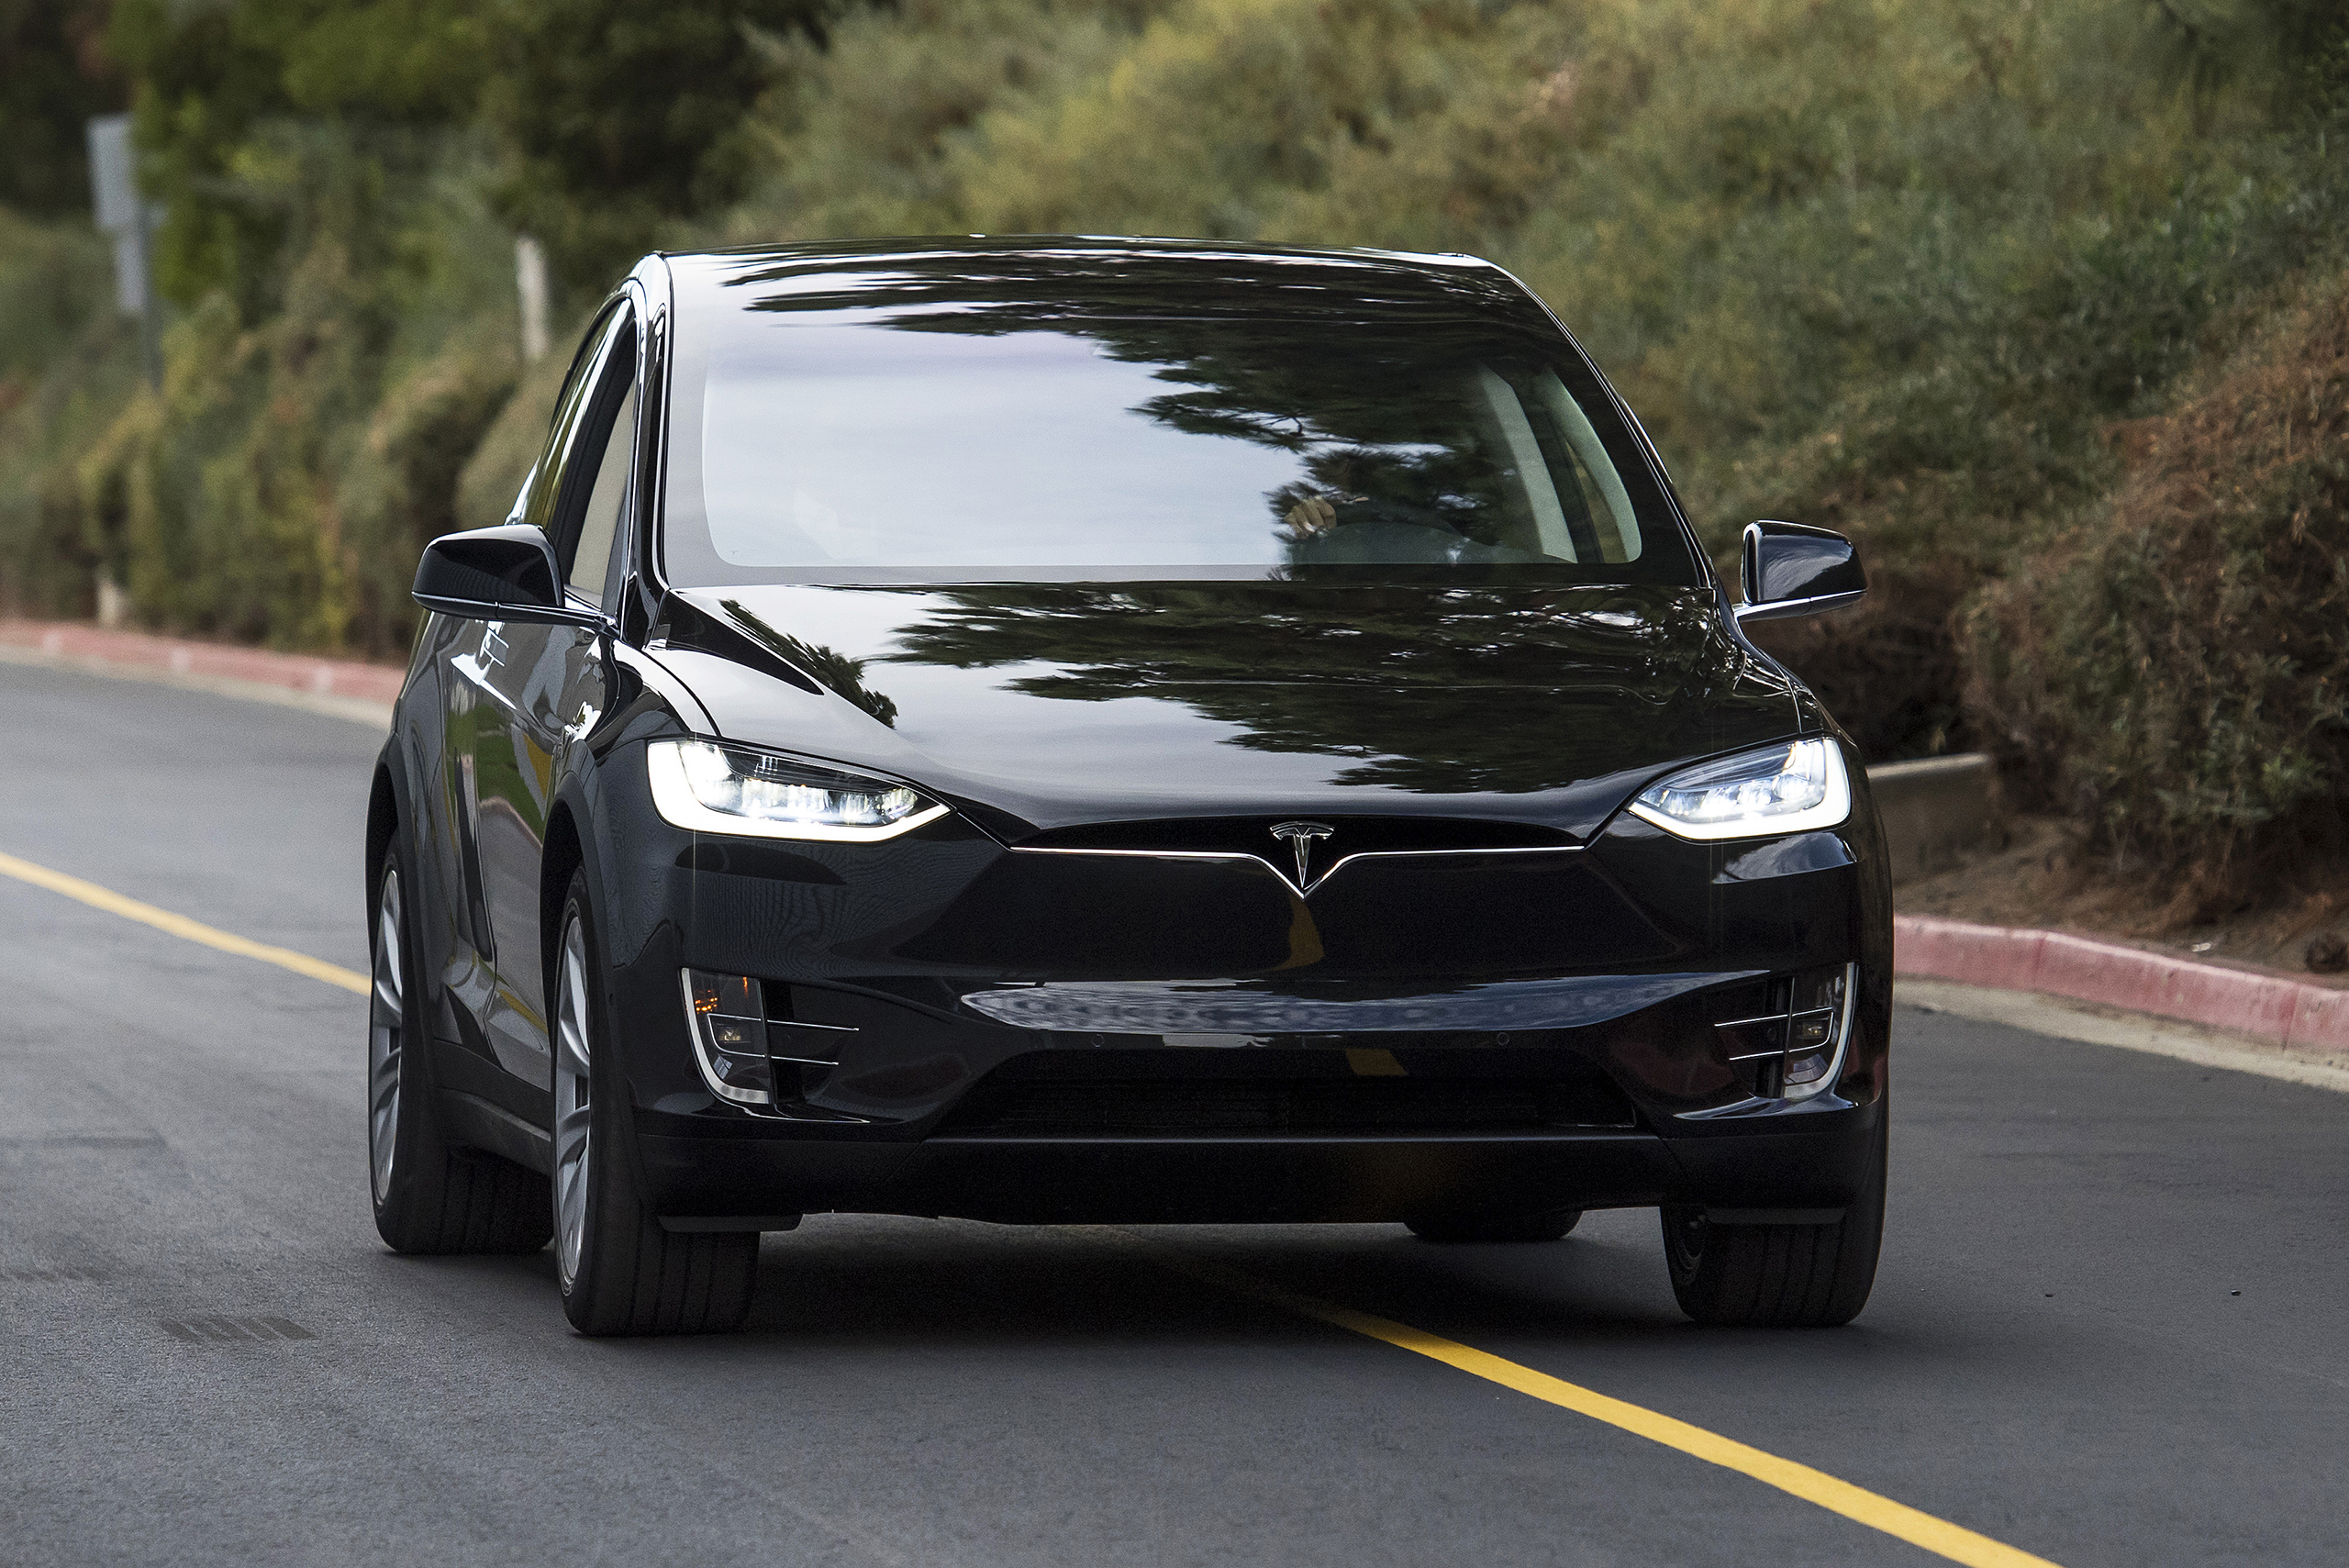 A Tesla Model X is driven during an event in Fremont, Calif., on Sept. 29, 2015.